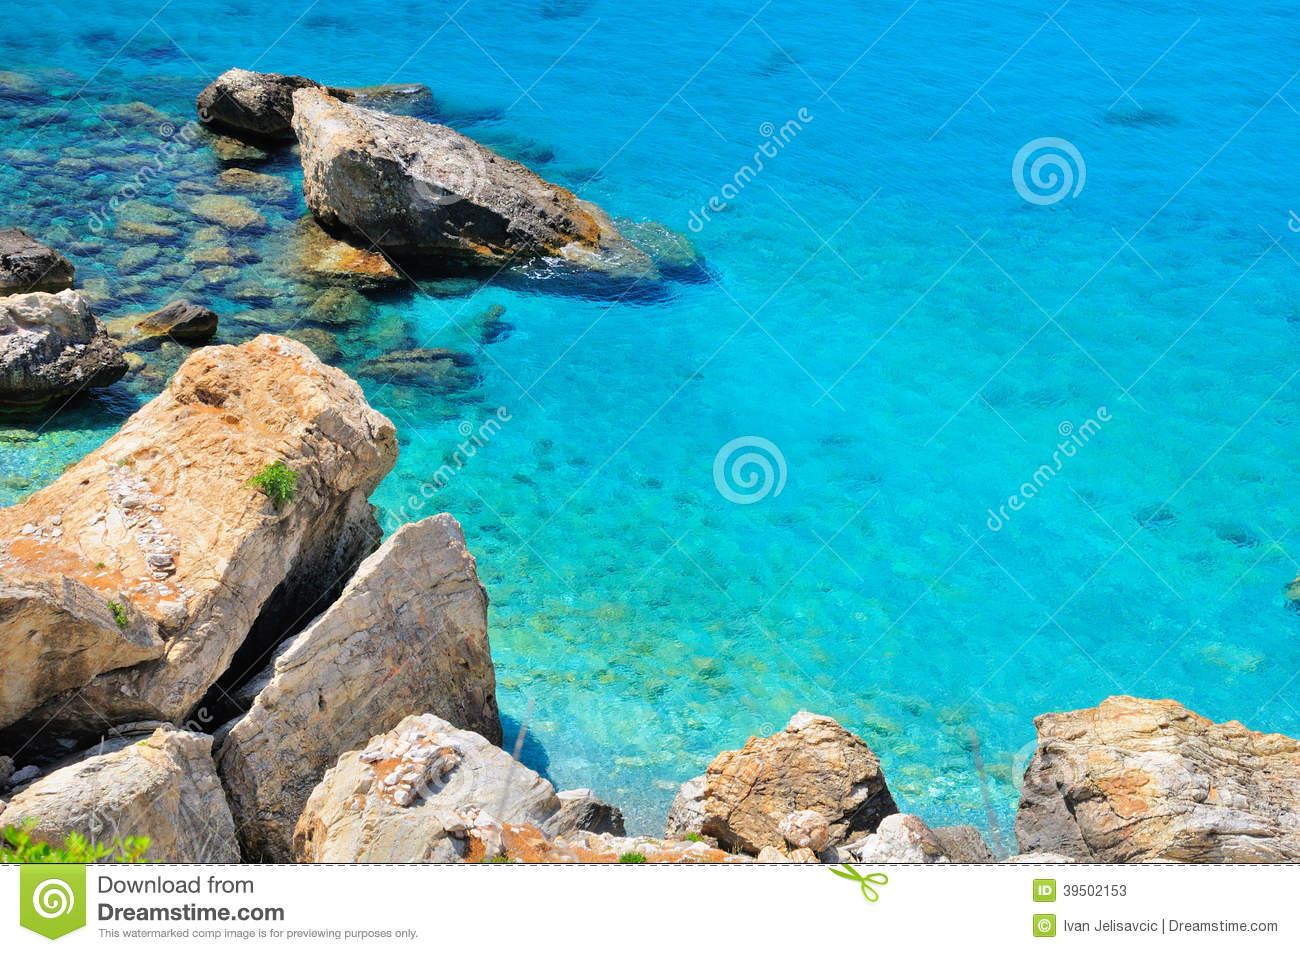 Turquoise sea and rocky cliffs, Greece